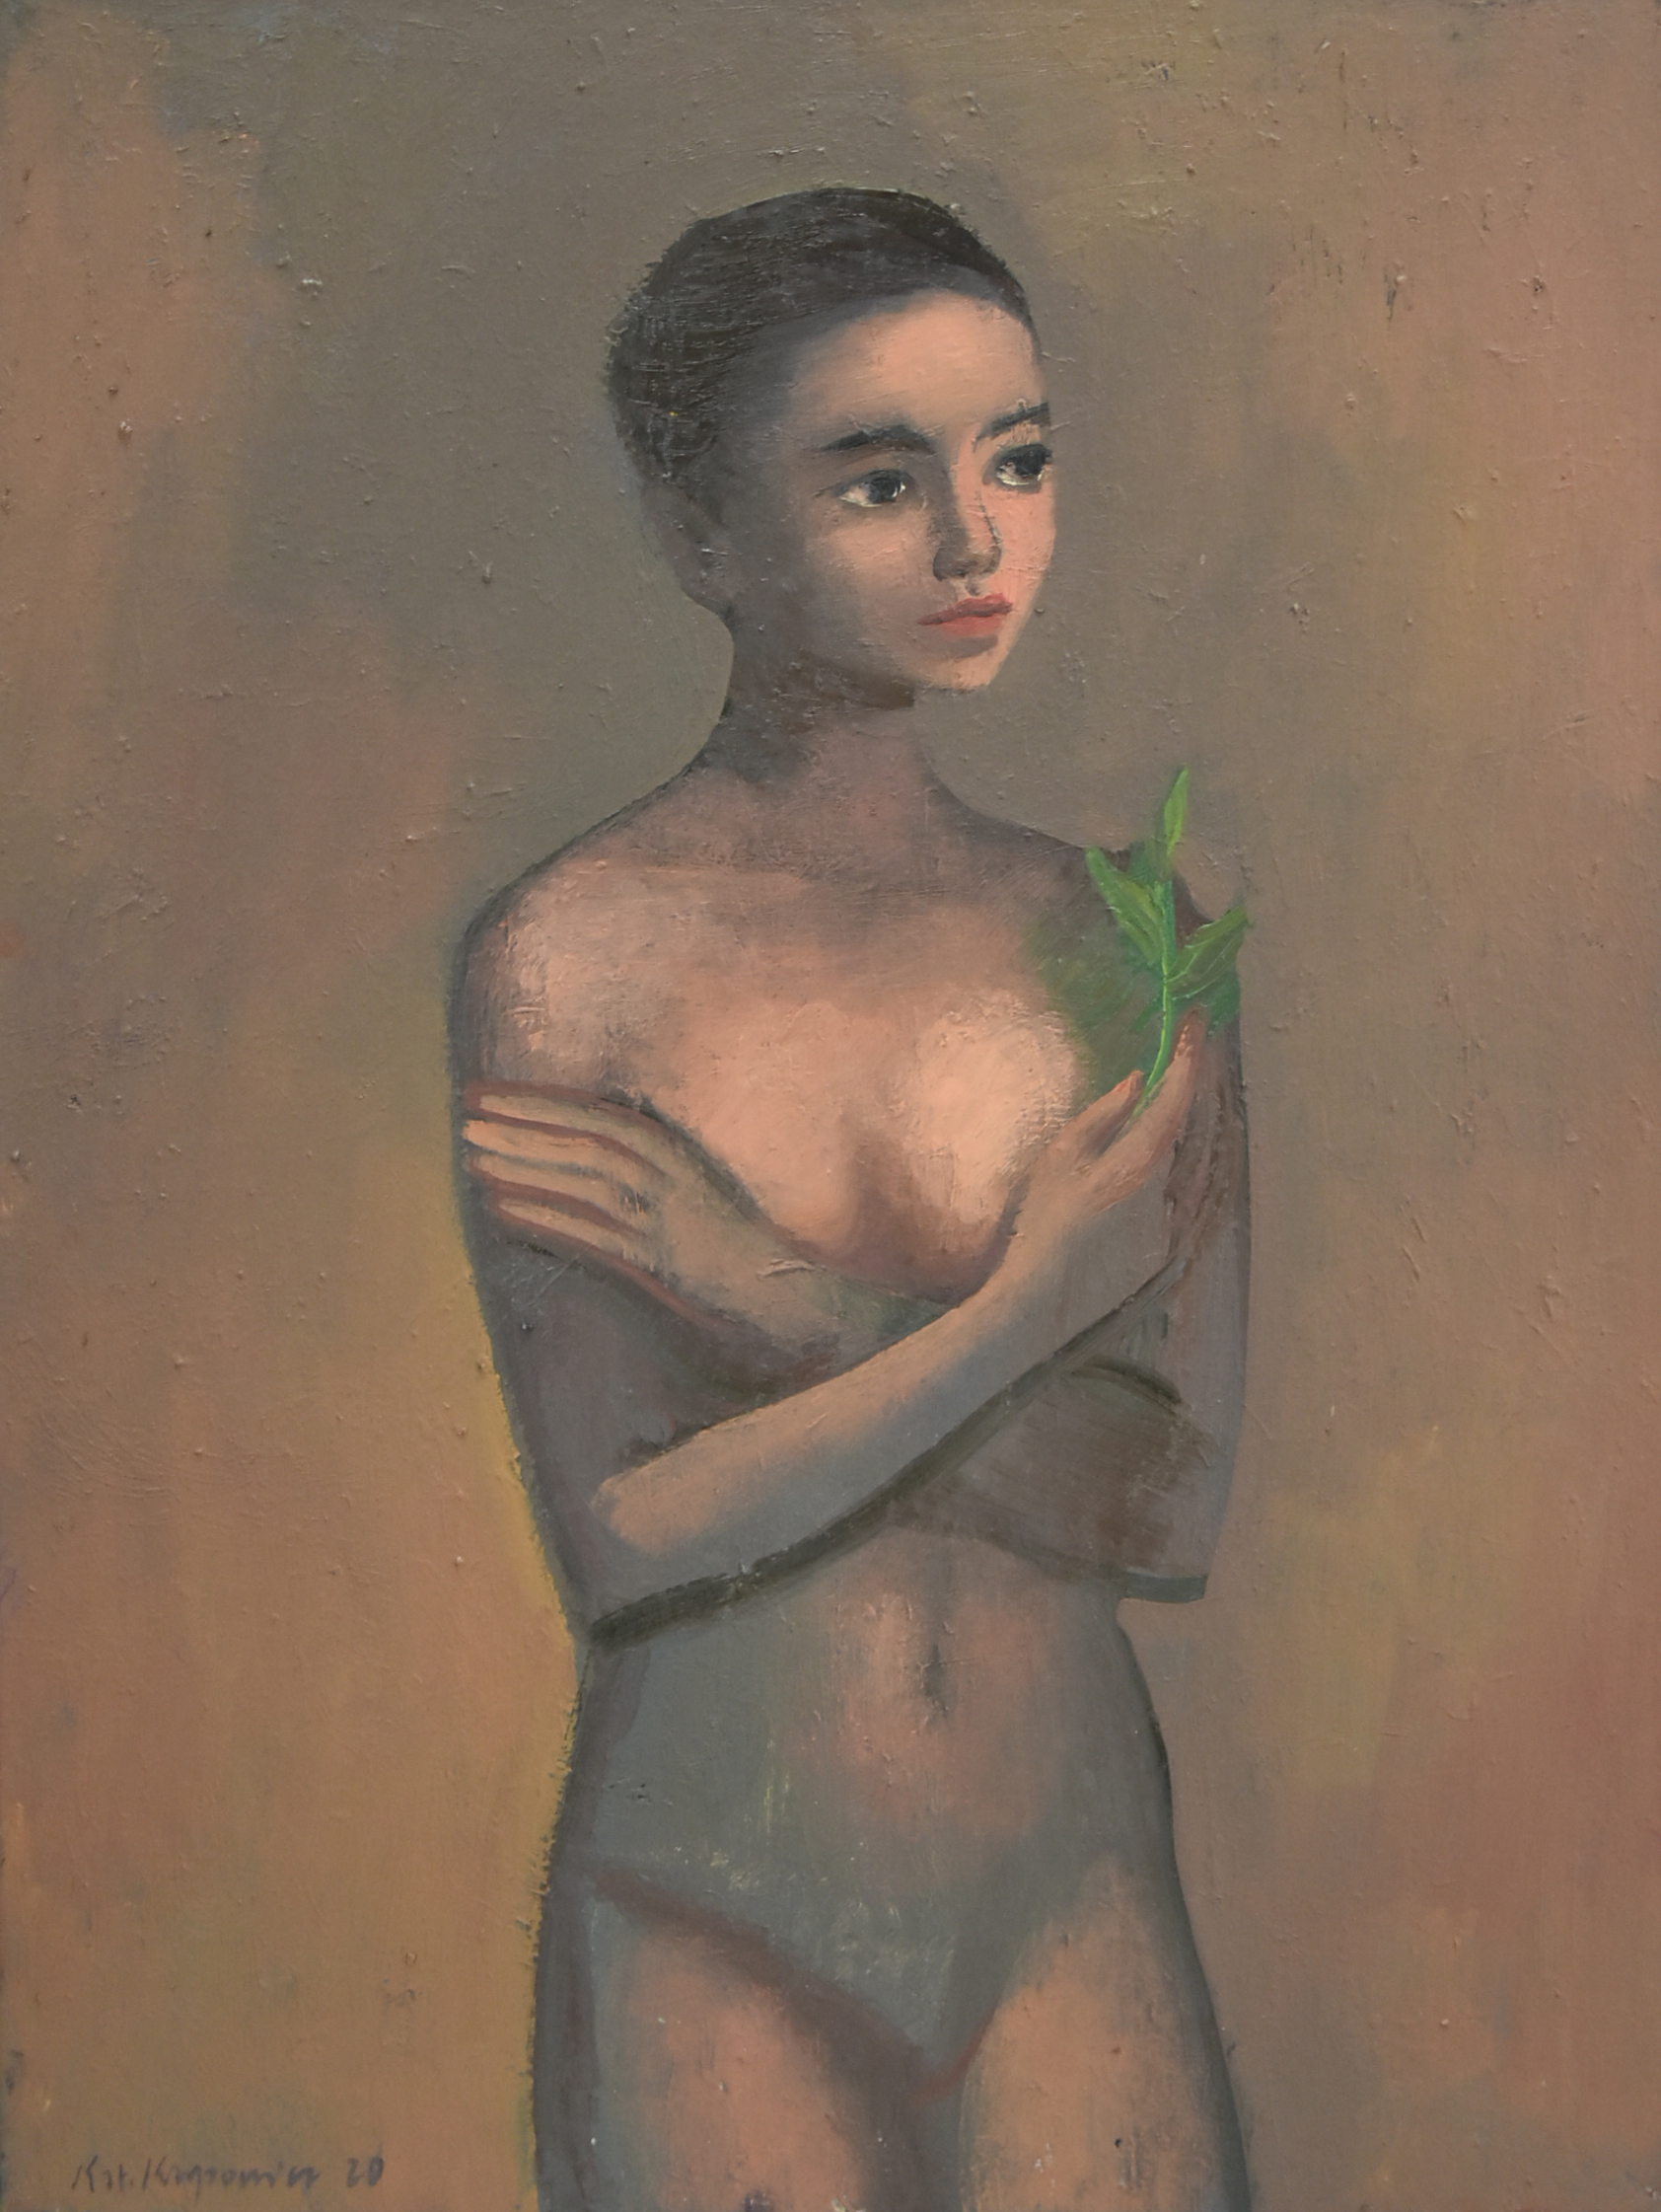 Girl with the plant, 2020